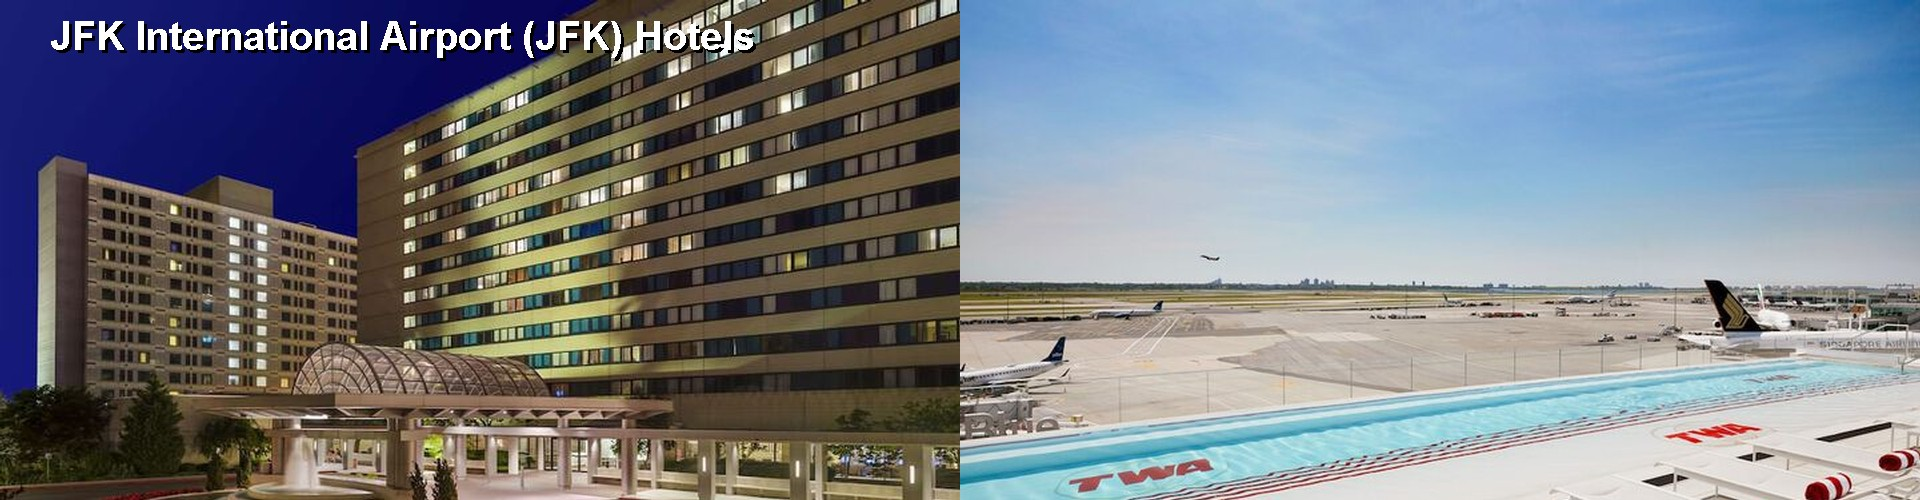 5 Best Hotels near JFK International Airport (JFK)